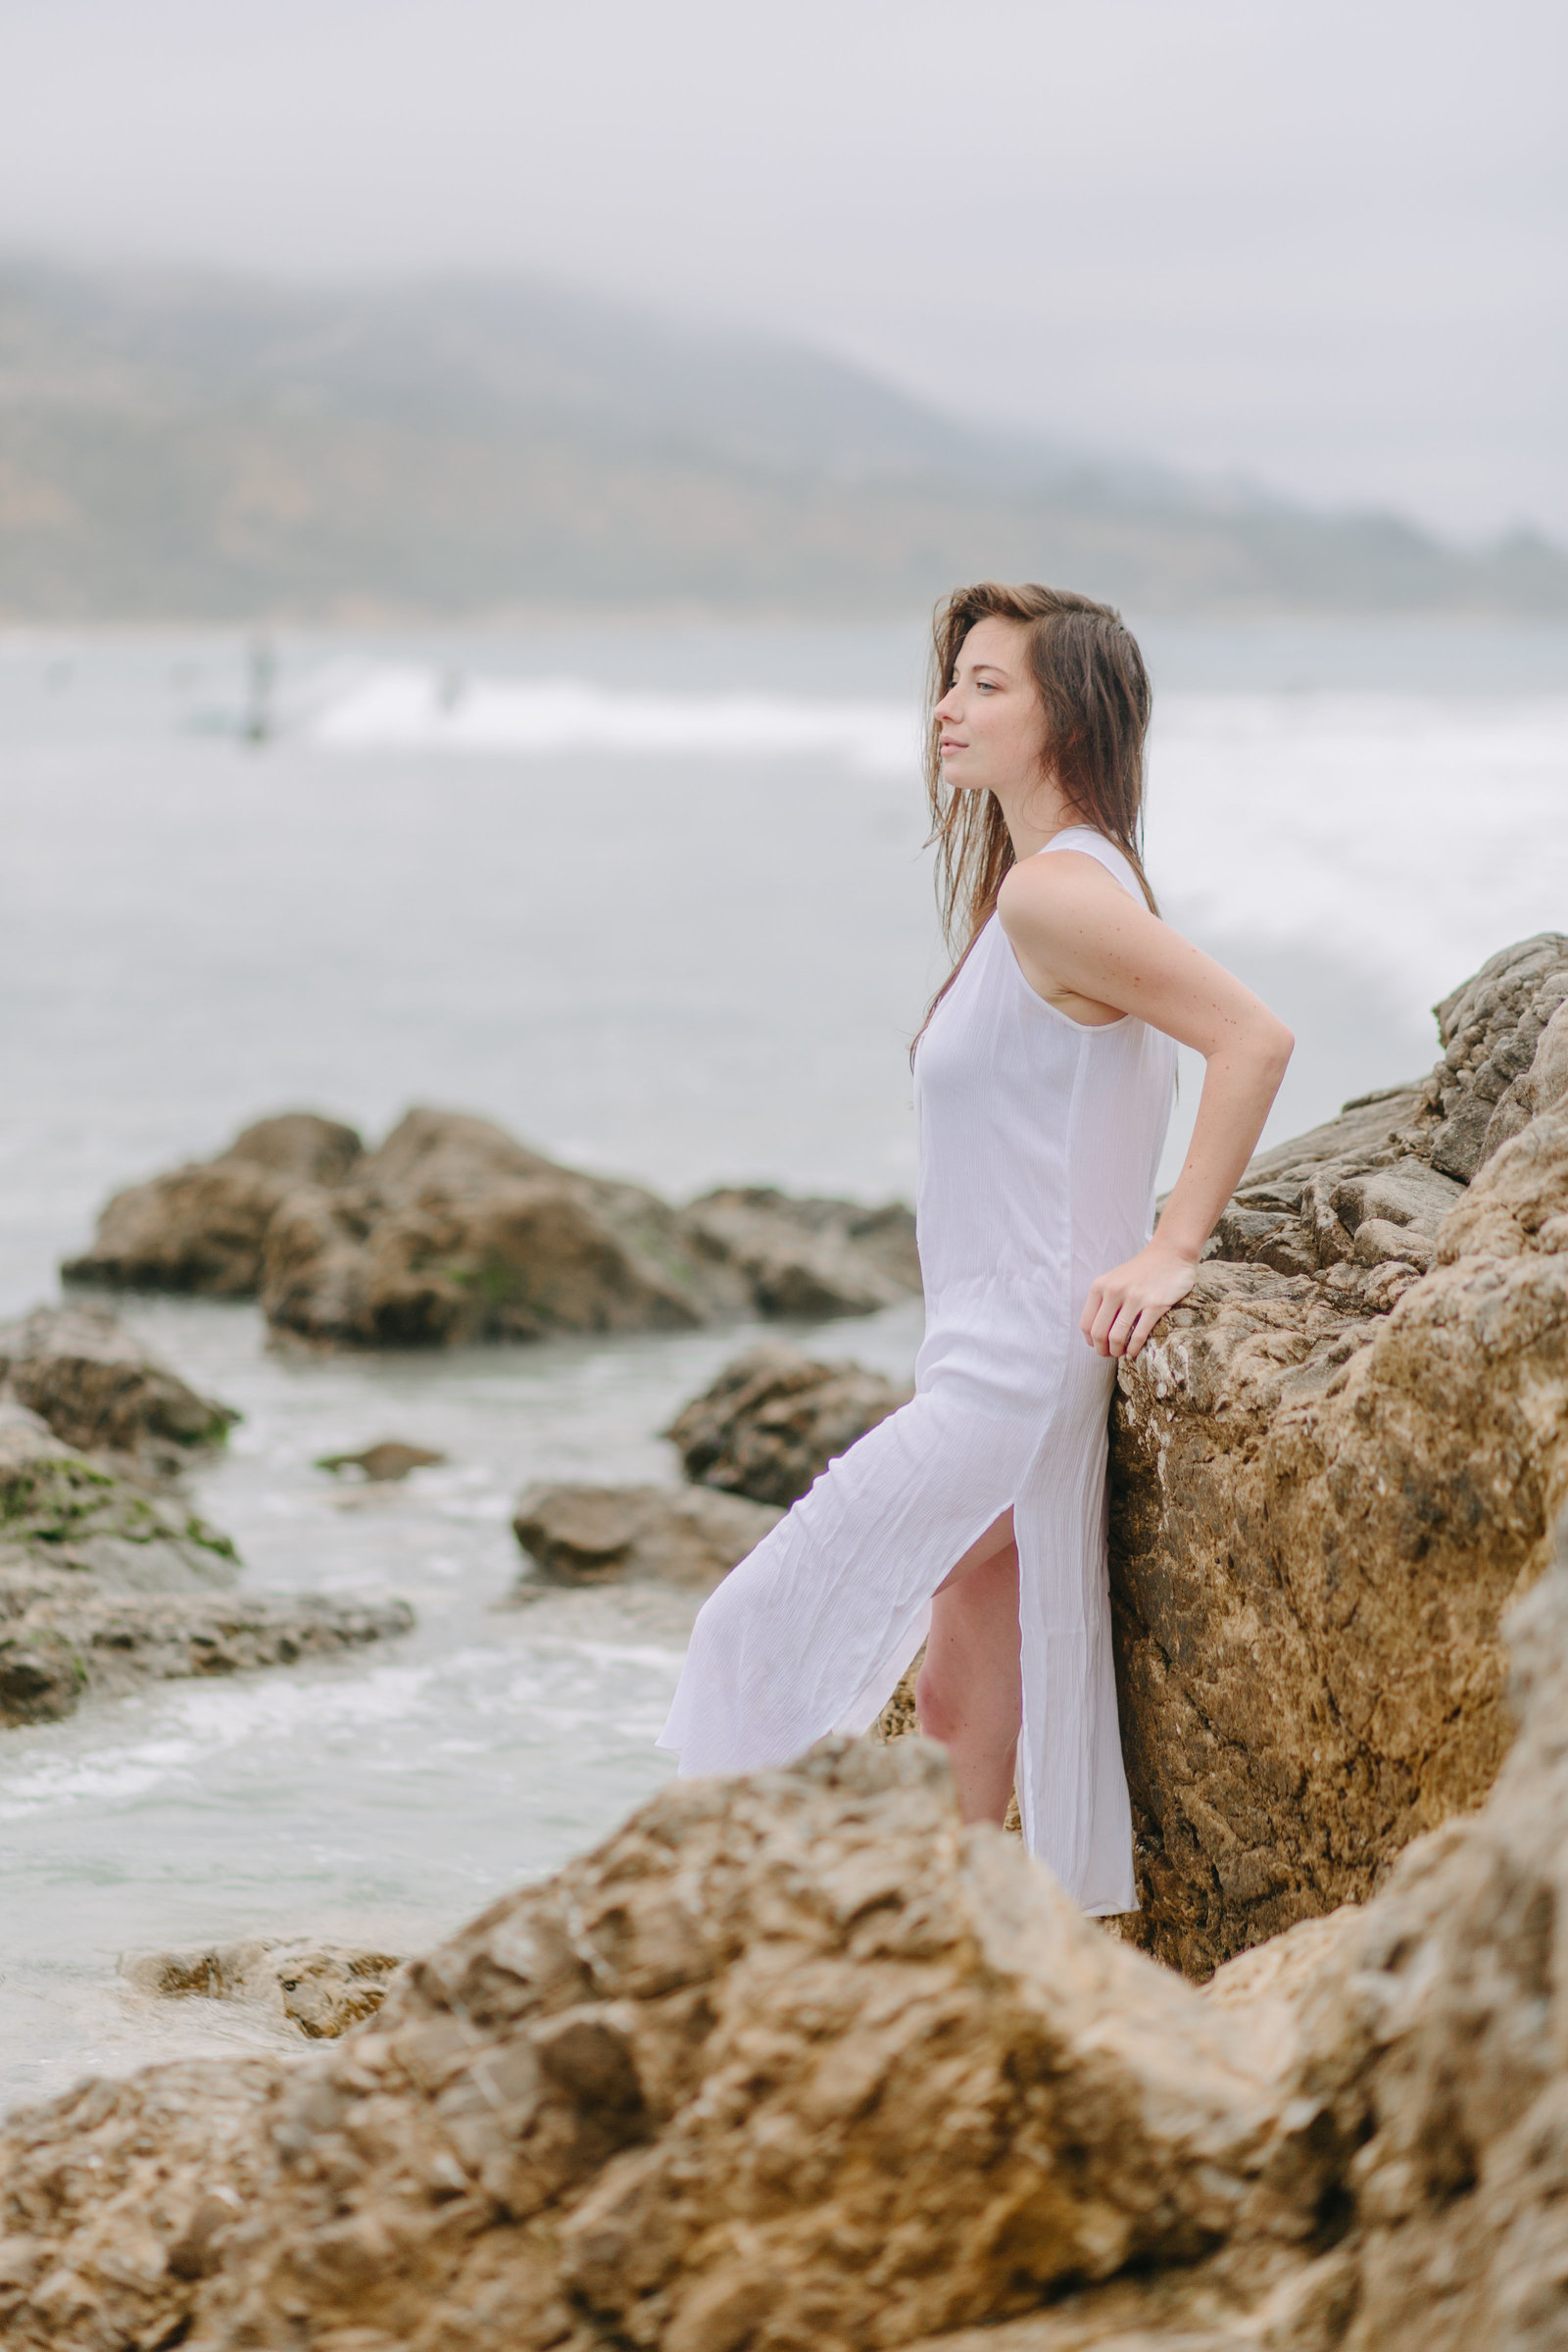 El Leo Carrillo Beach Malibu Angelika Johns Photography-3382